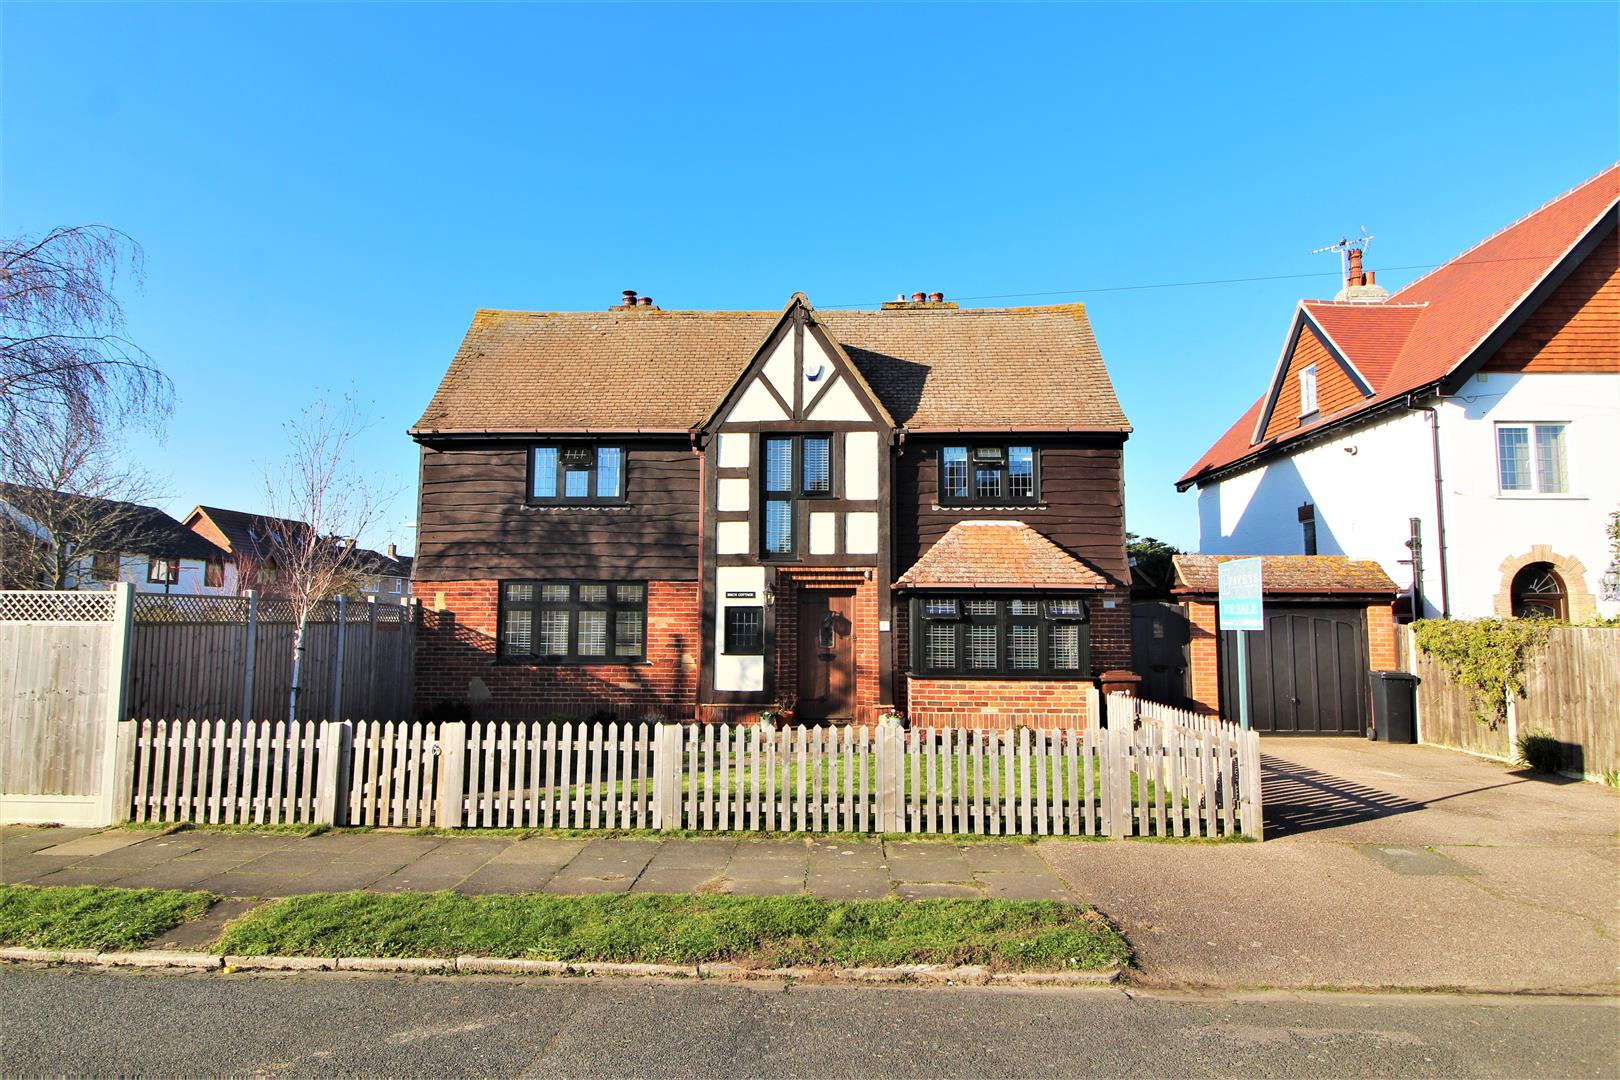 Glebe Way, Frinton-On-Sea, Essex, CO13 9HR